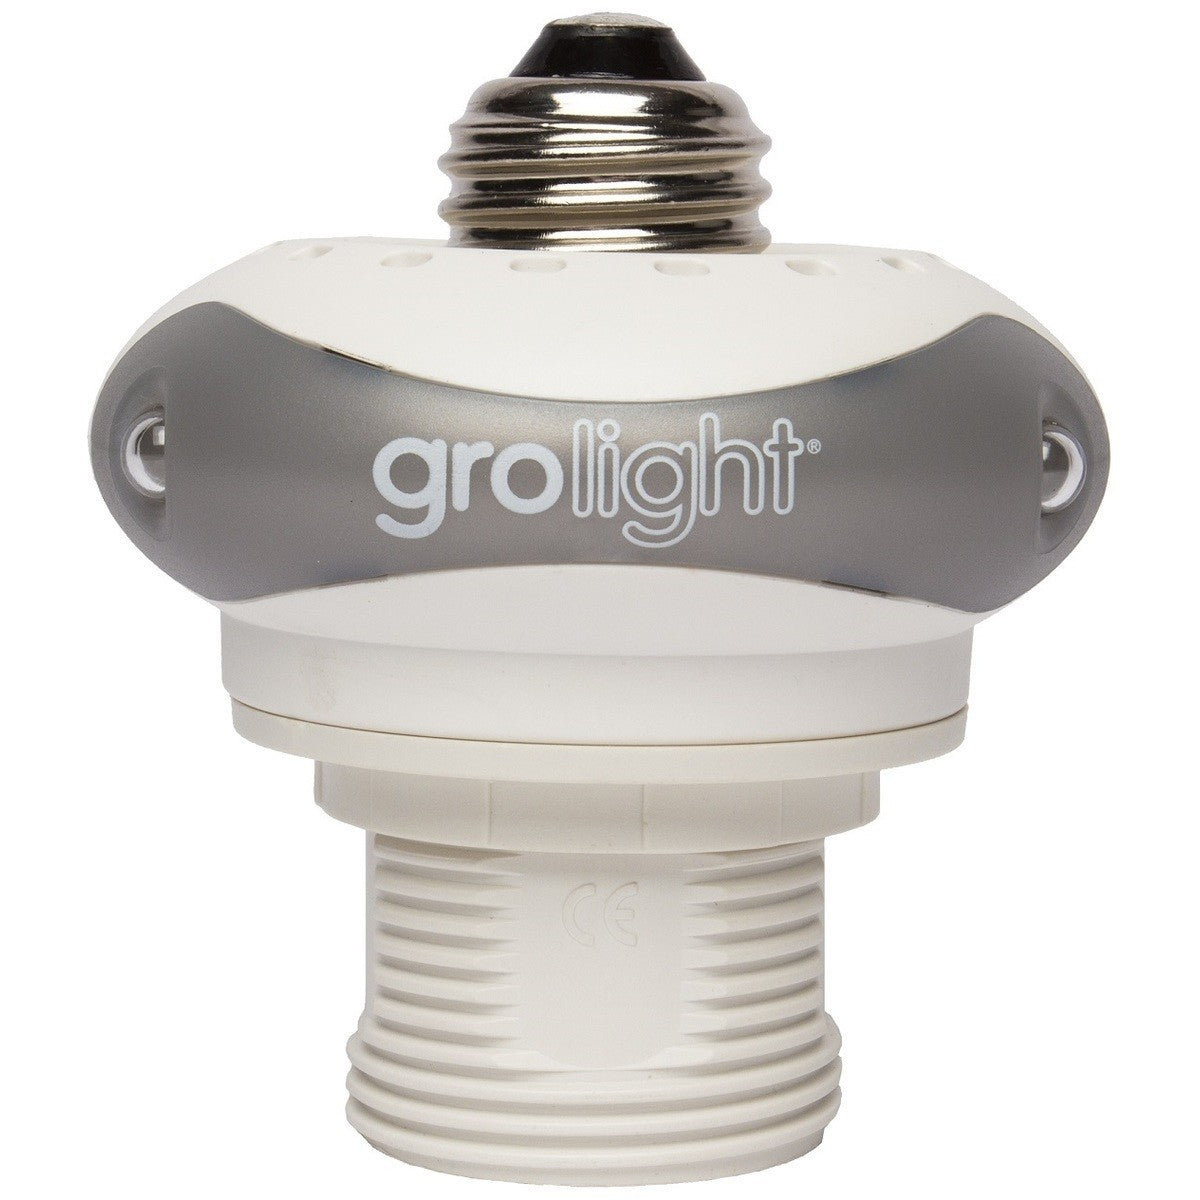 Gro Light Night Light